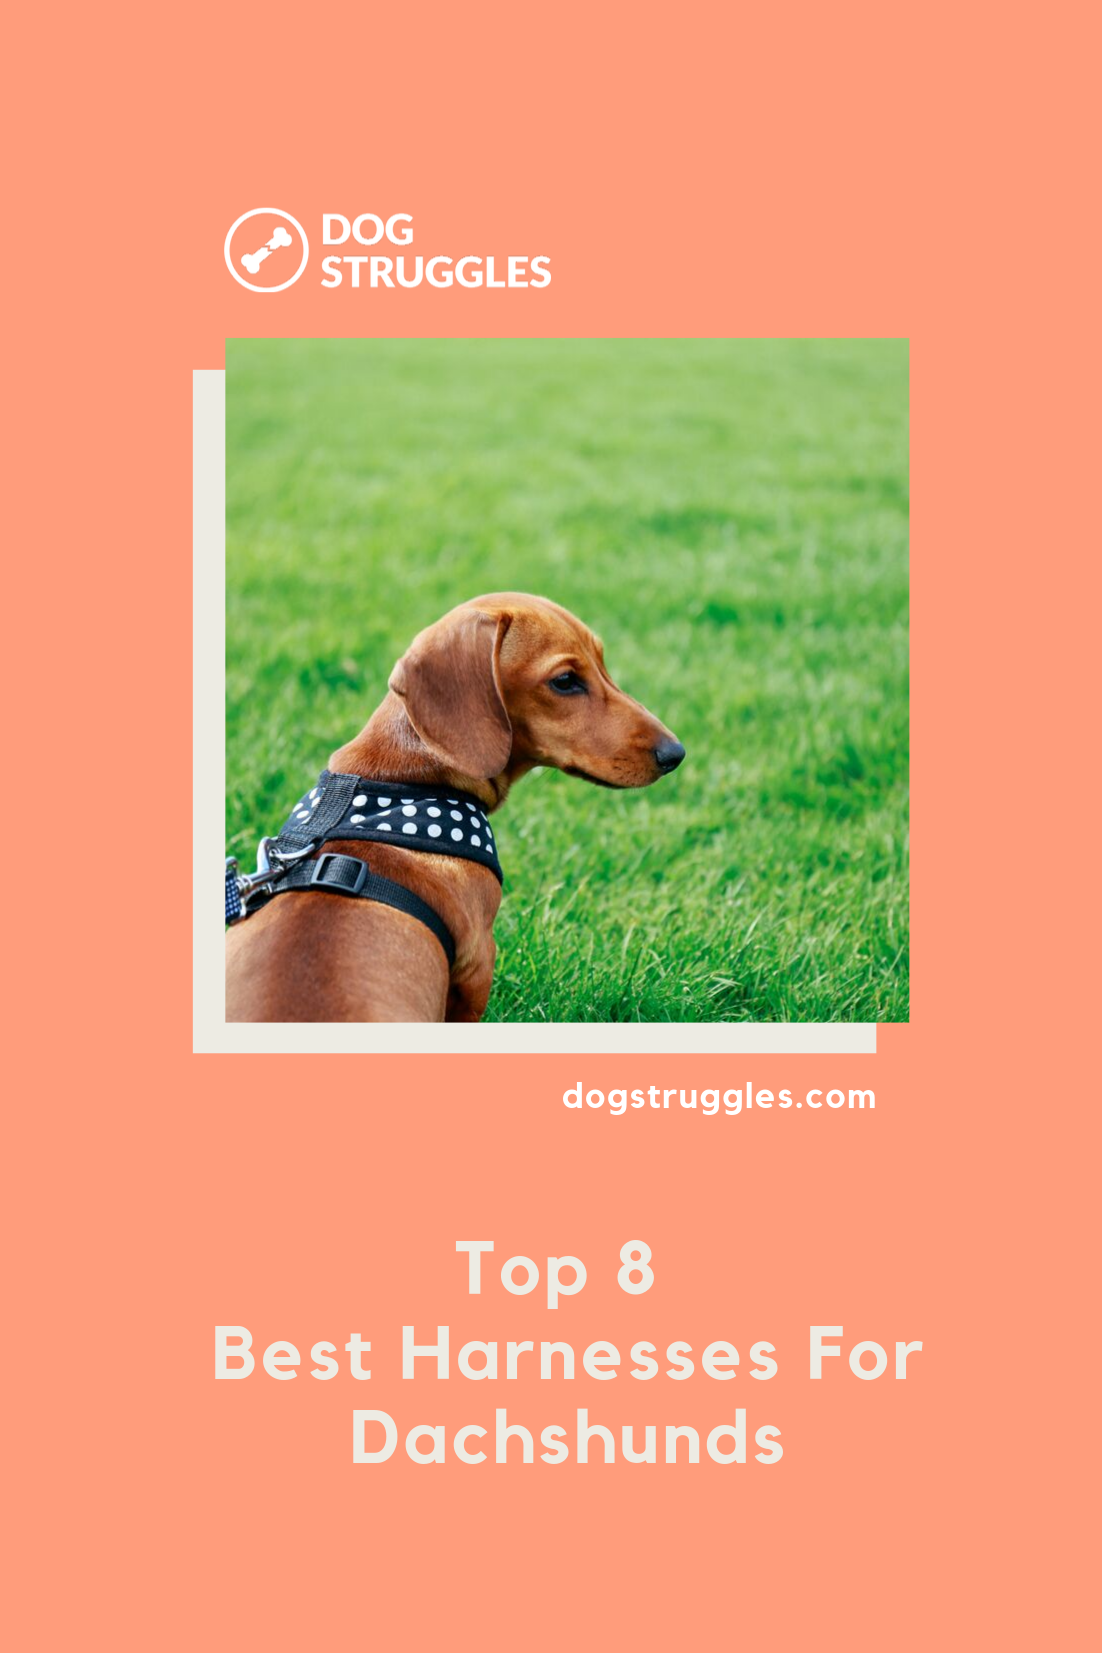 Top 8 Best Harnesses For Dachshunds Dachshund Big Dogs Dog